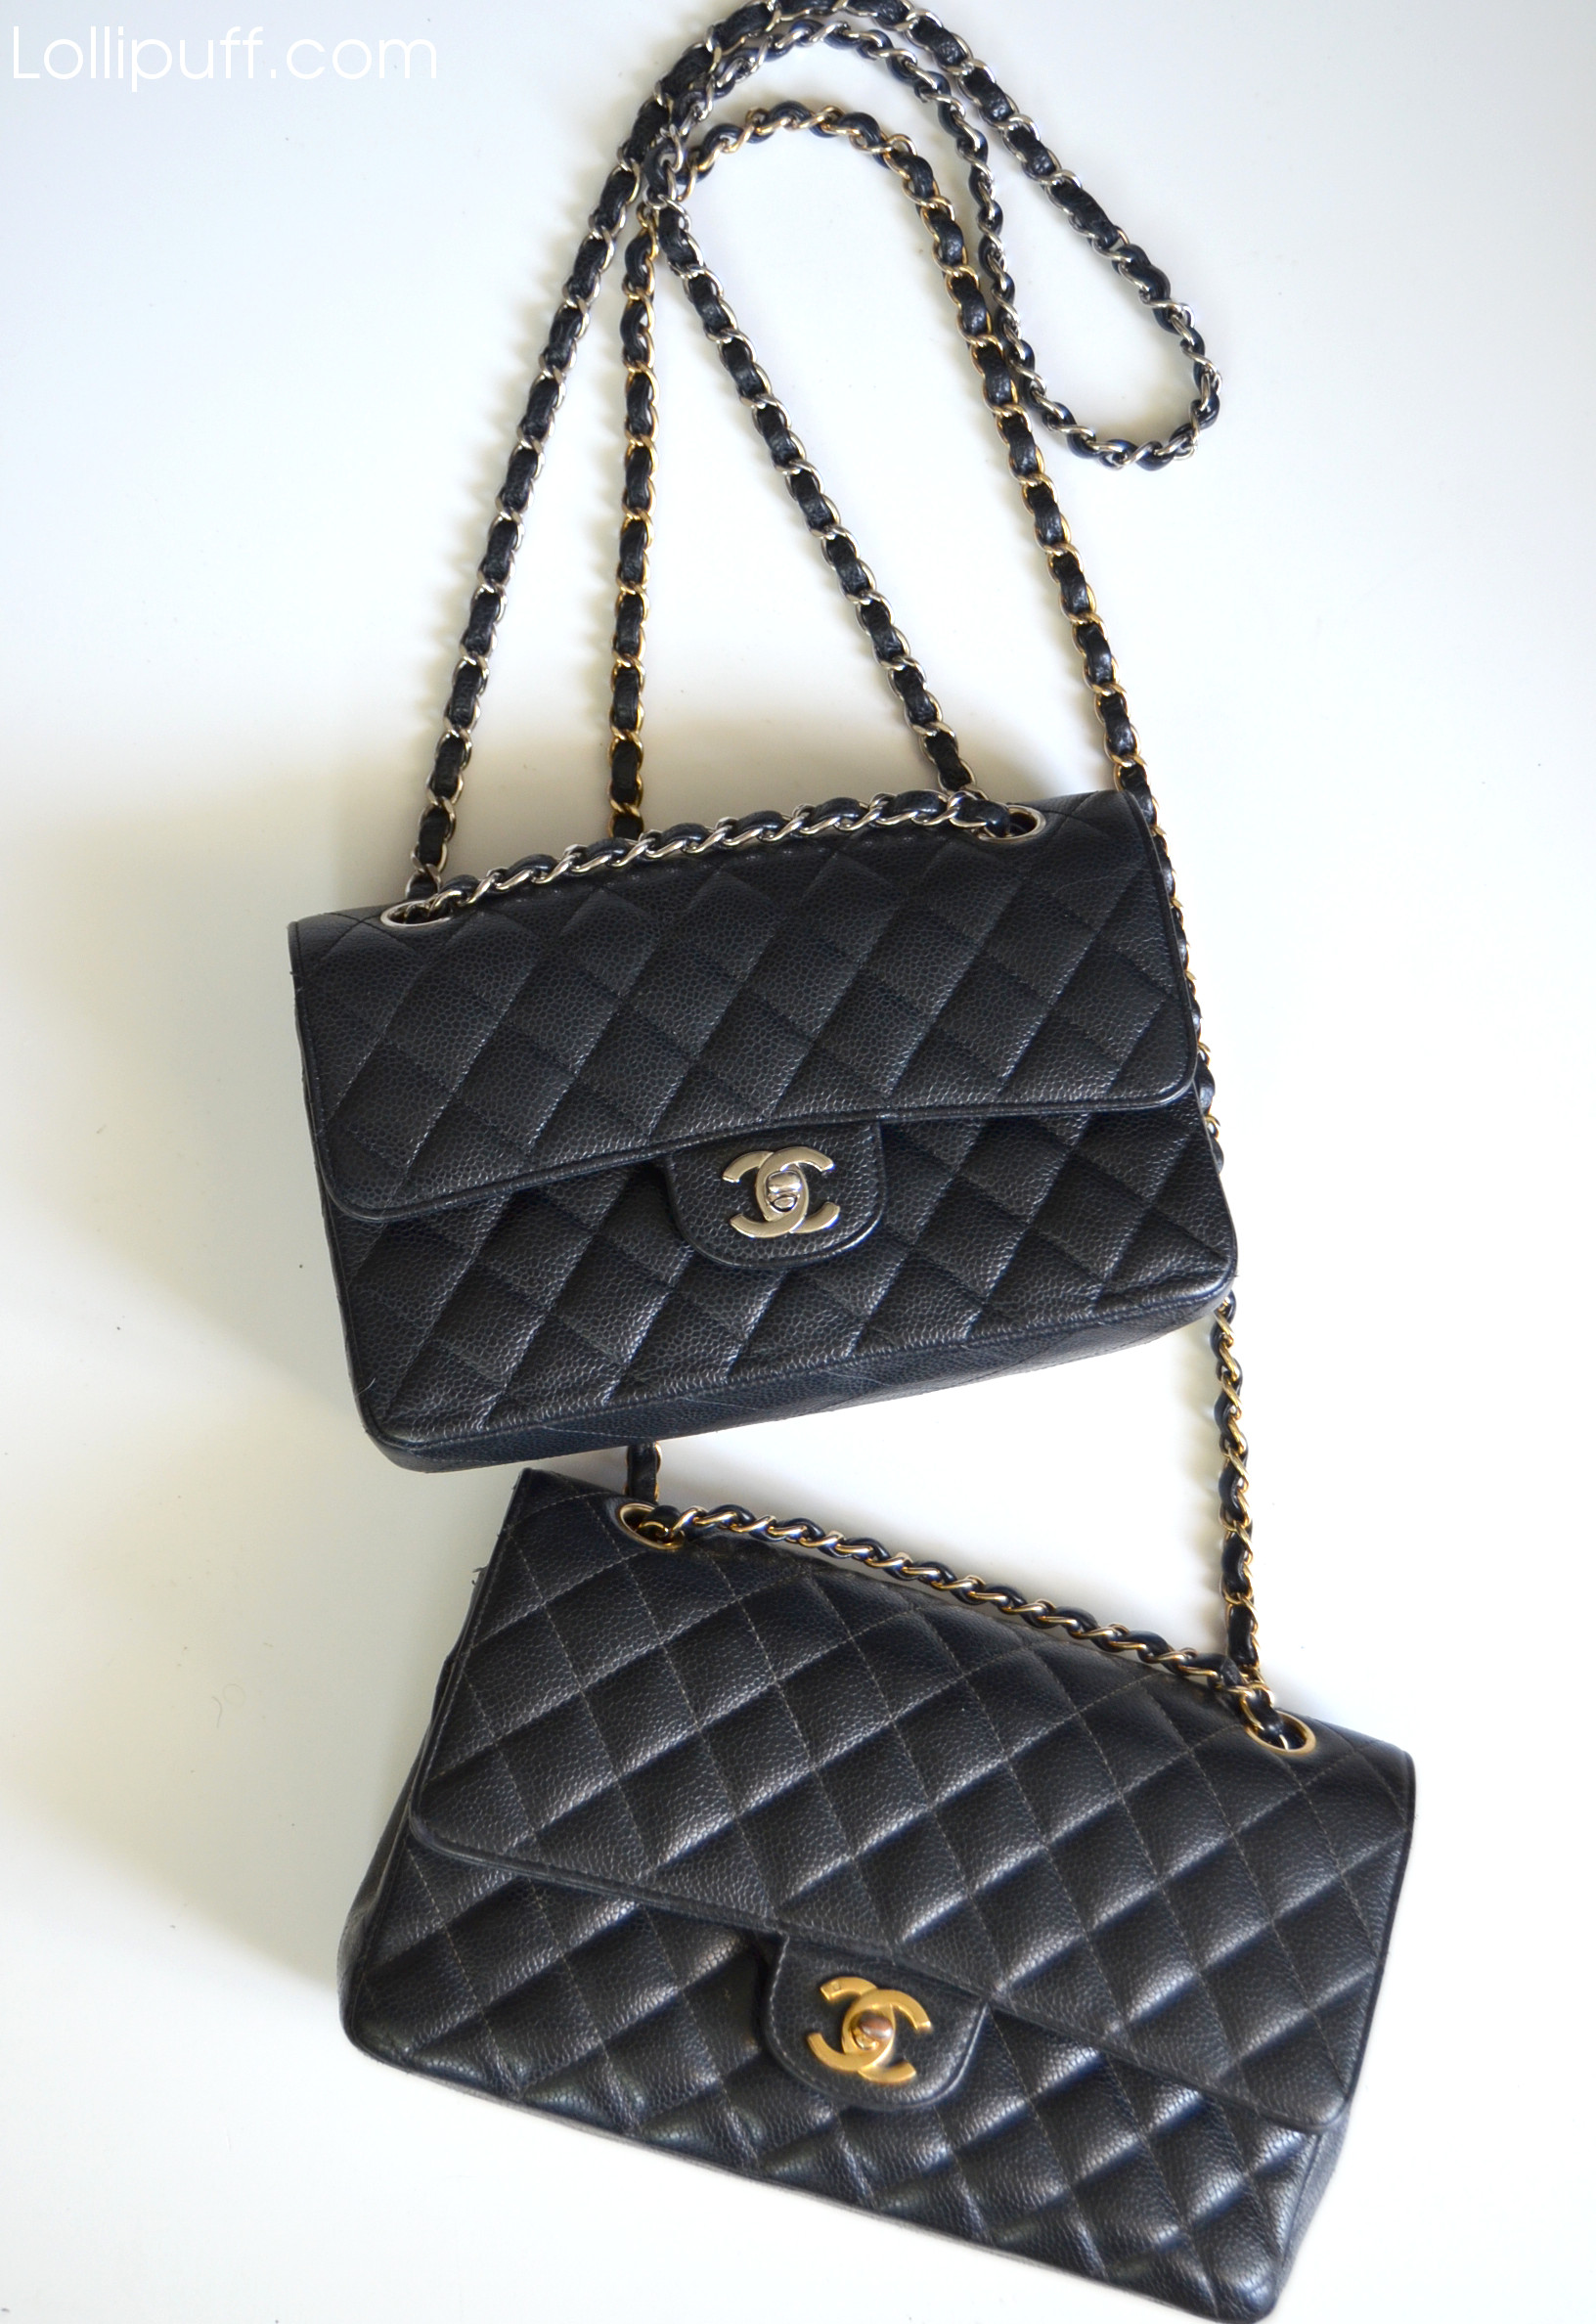 Chanel black caviar classic double flap bags silver and gold hardware